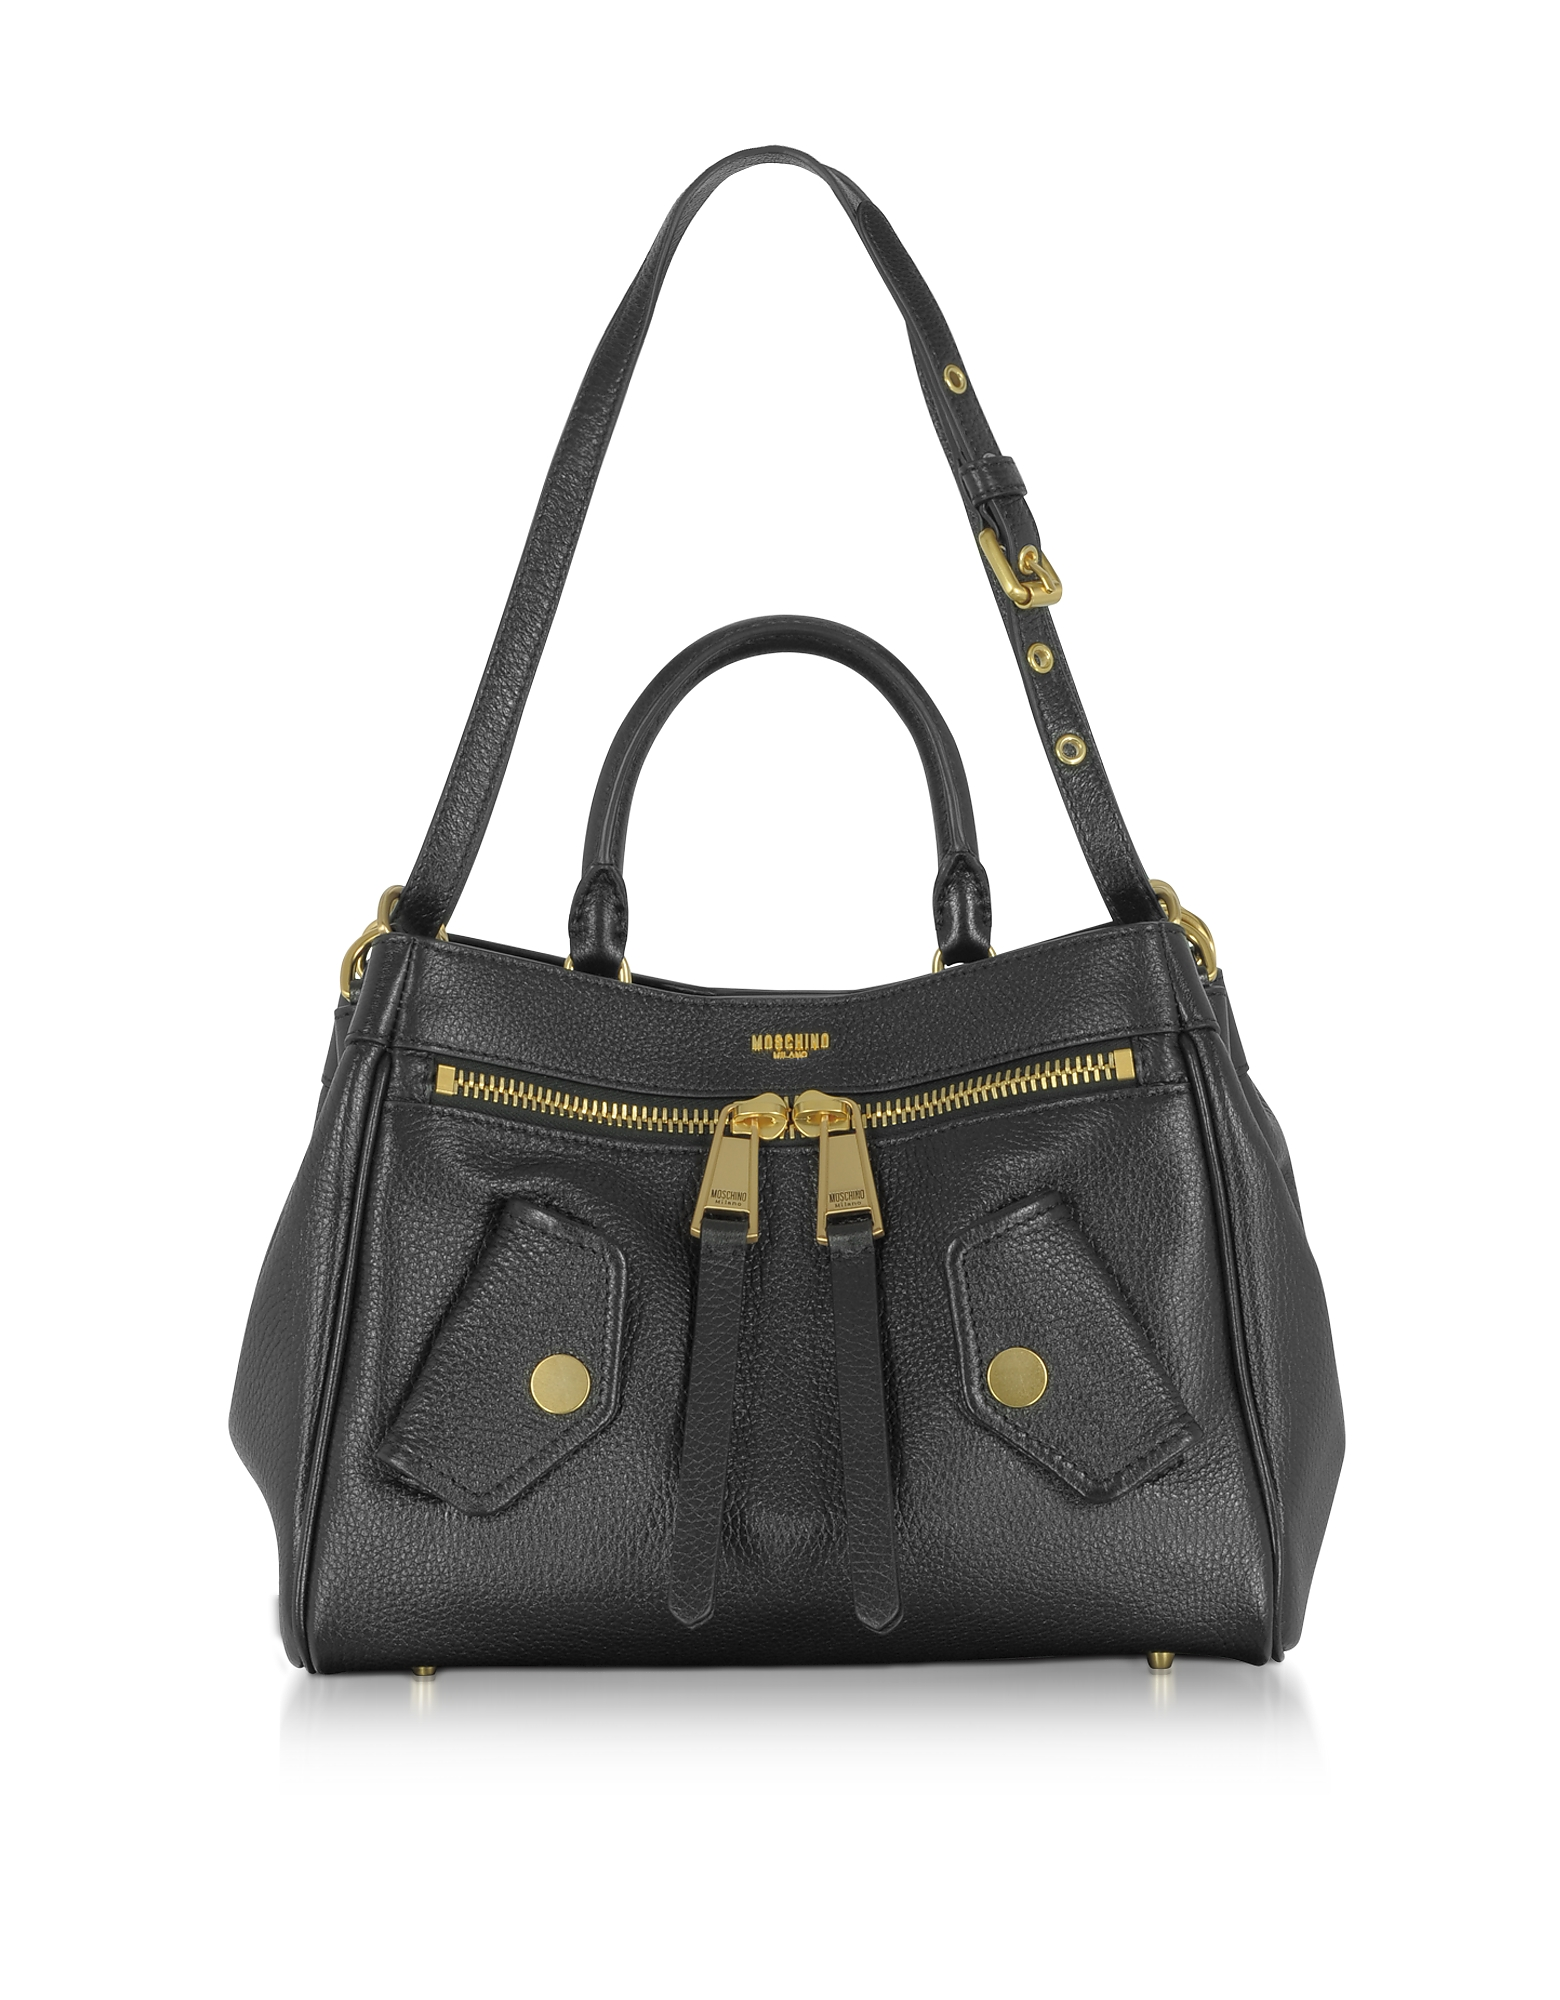 Moschino Handbags, Black Leather Satchel Bag